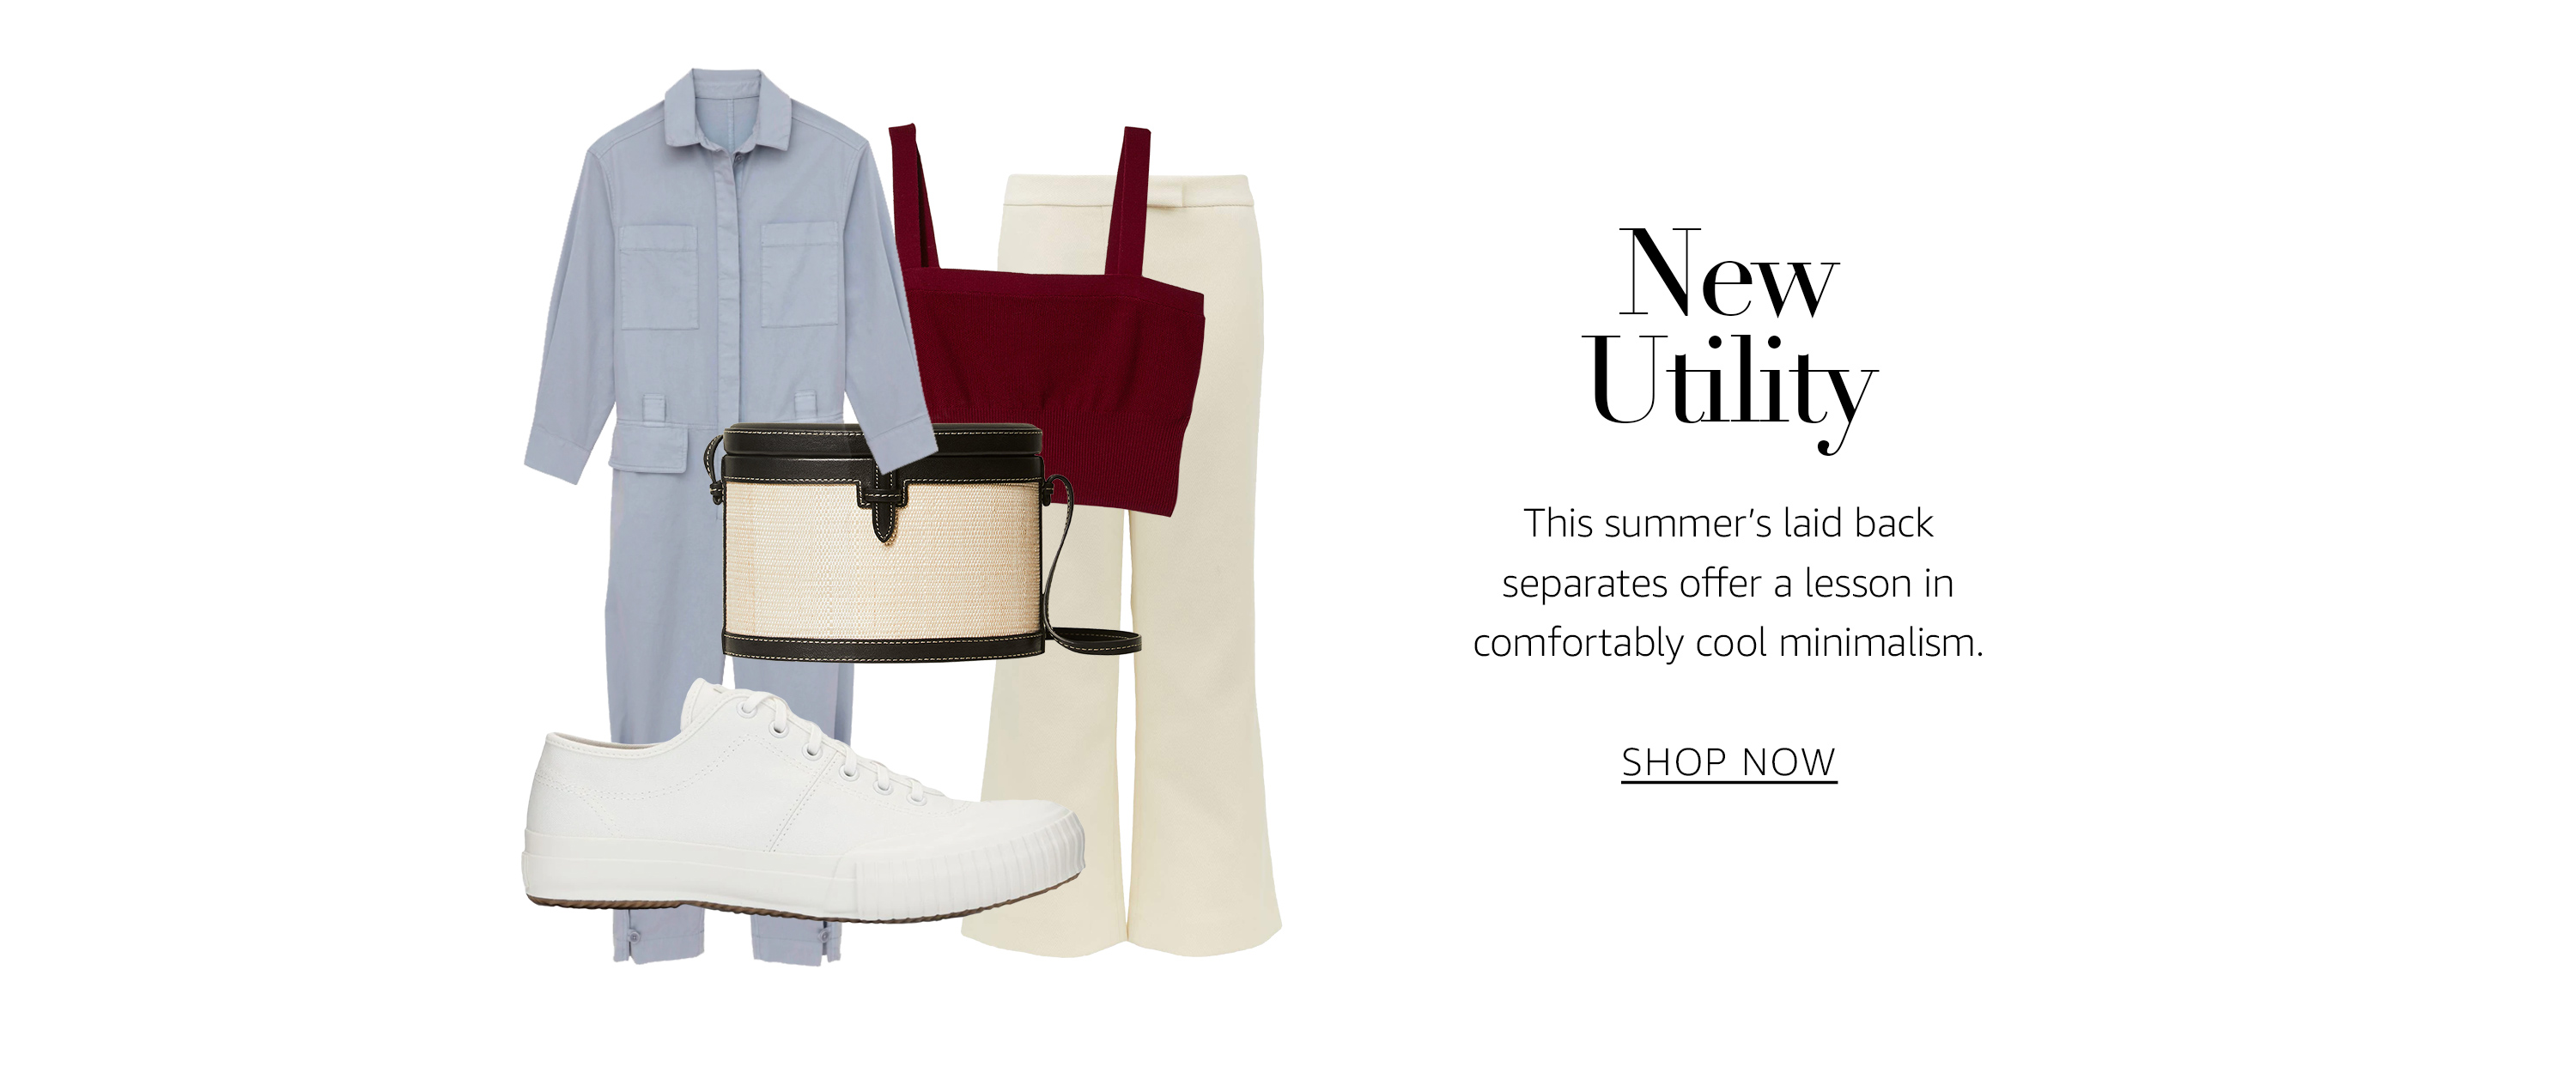 New Utility. This summer's laid back separates offer a lesson in comfortably cool minimalism.